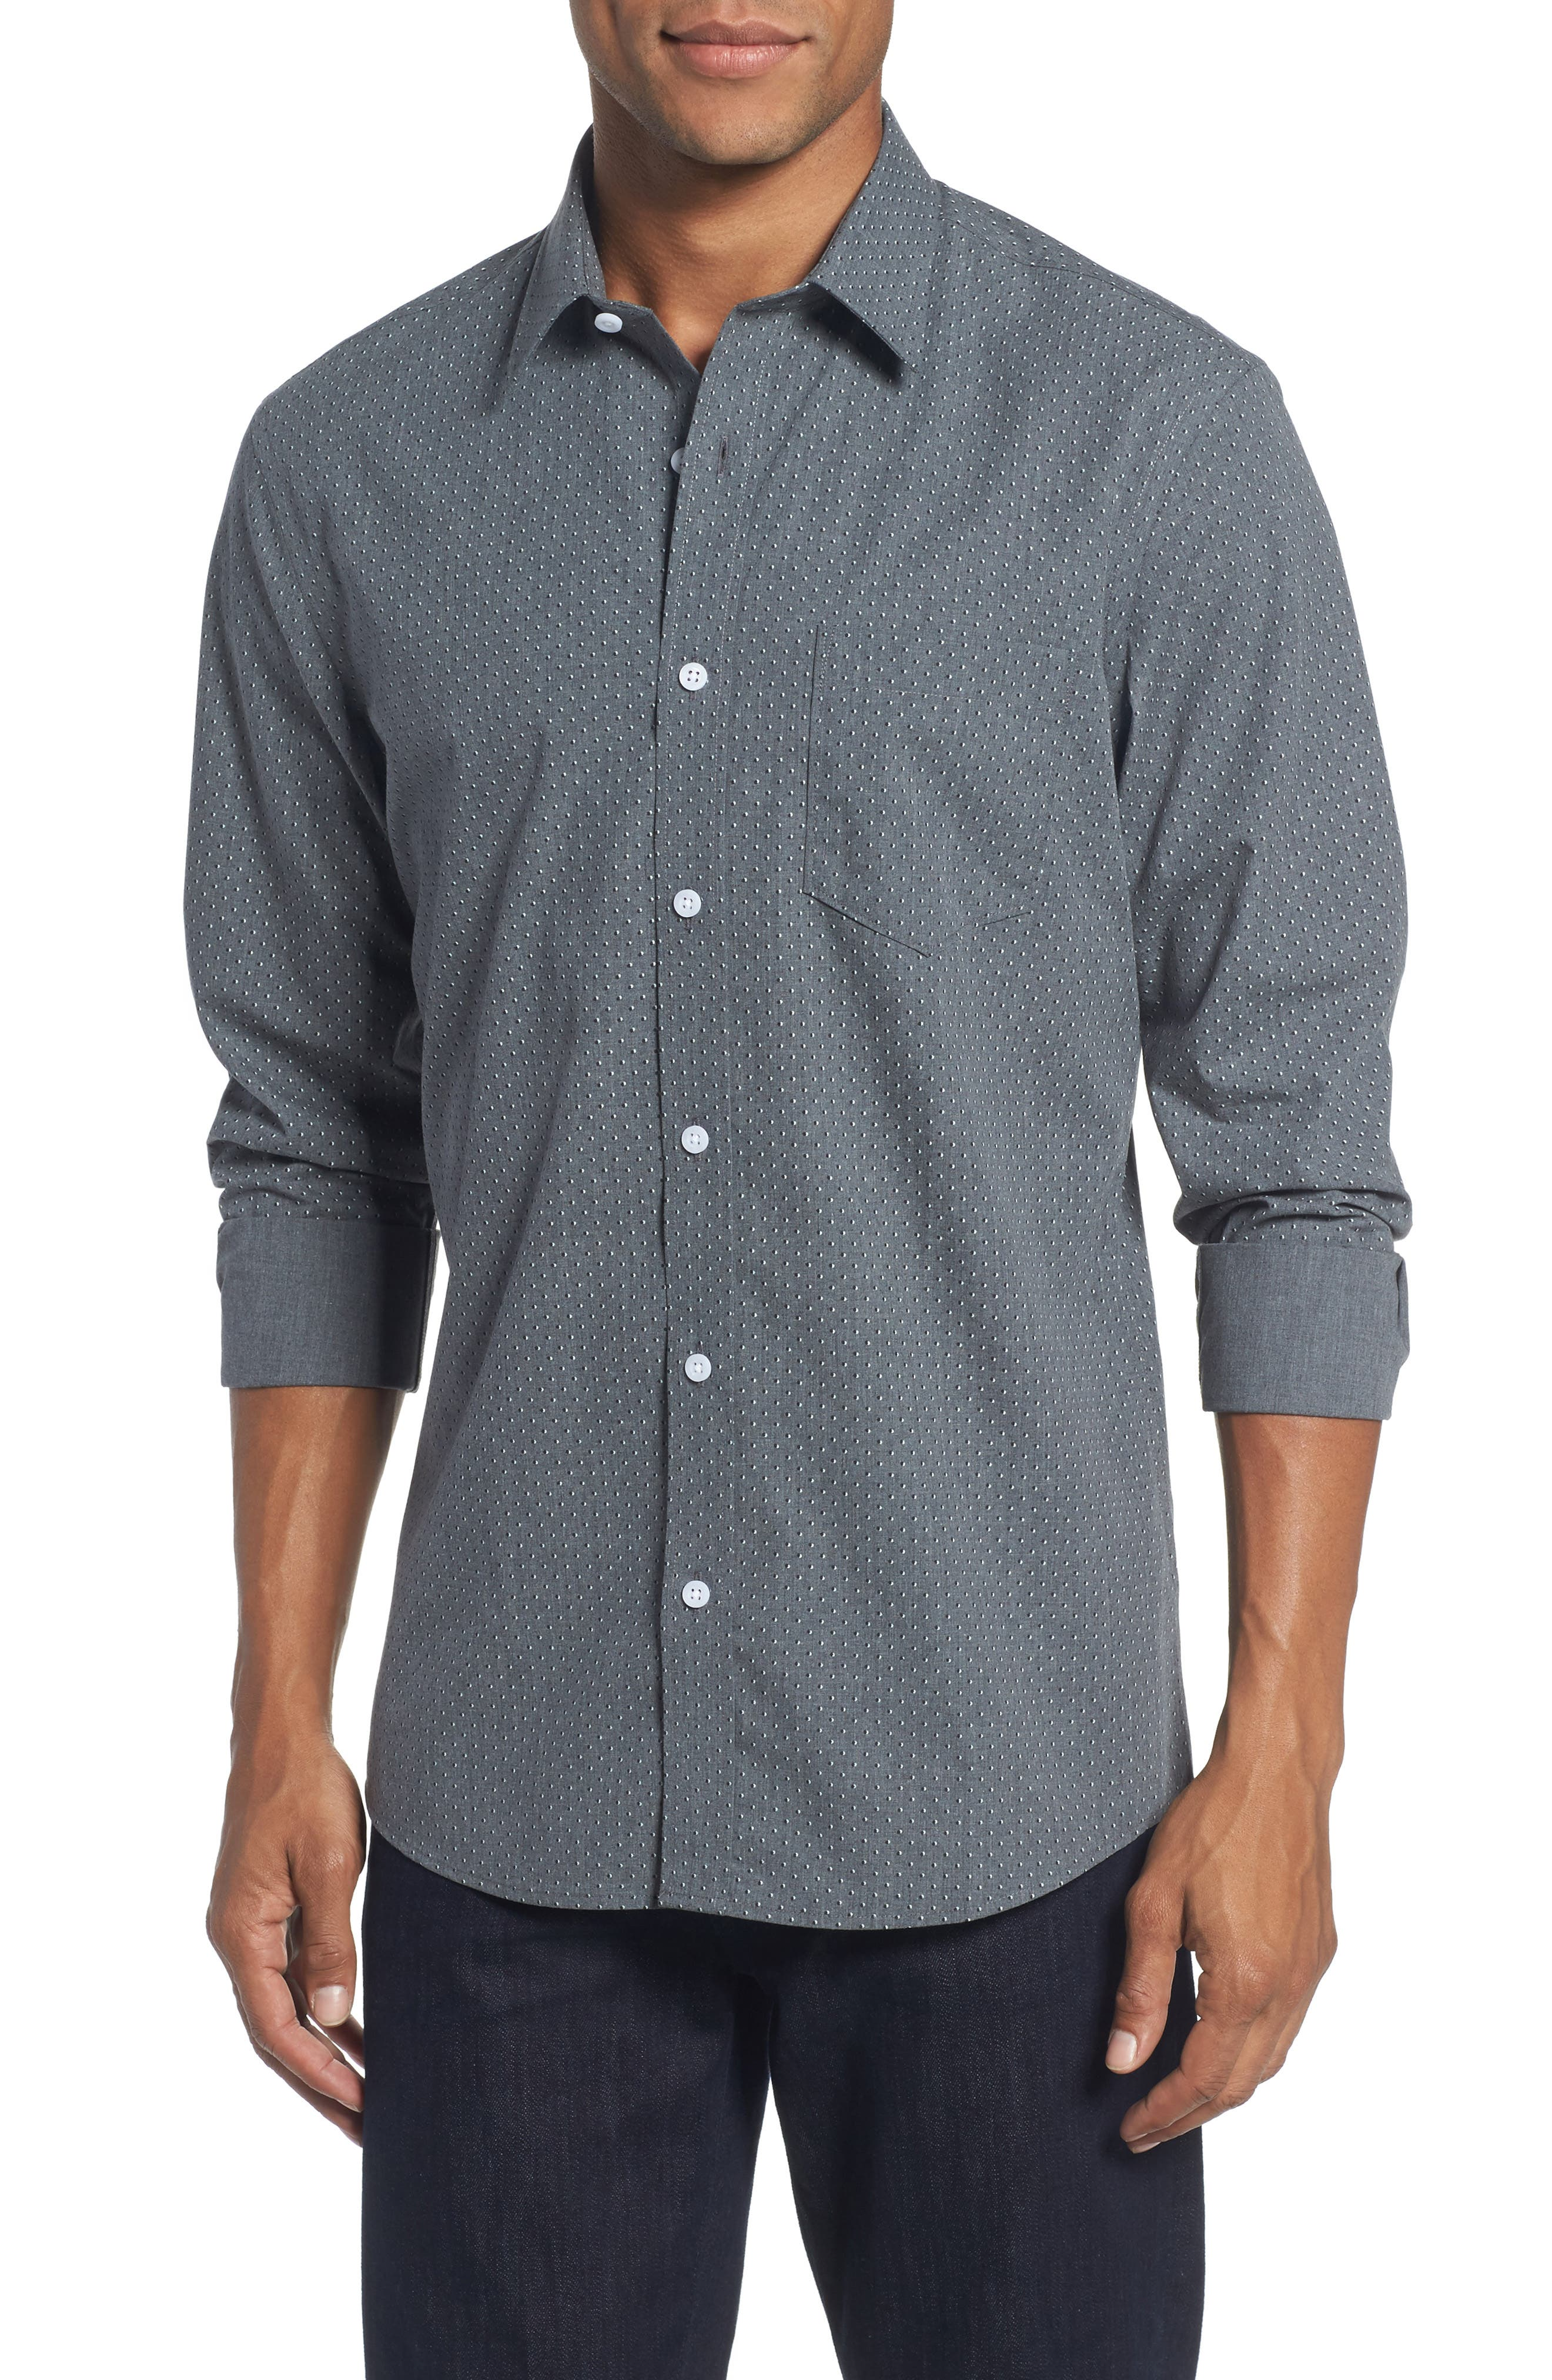 Nordstrom Men's Shop Trim Fit Non-Iron Dot Print Sport Shirt